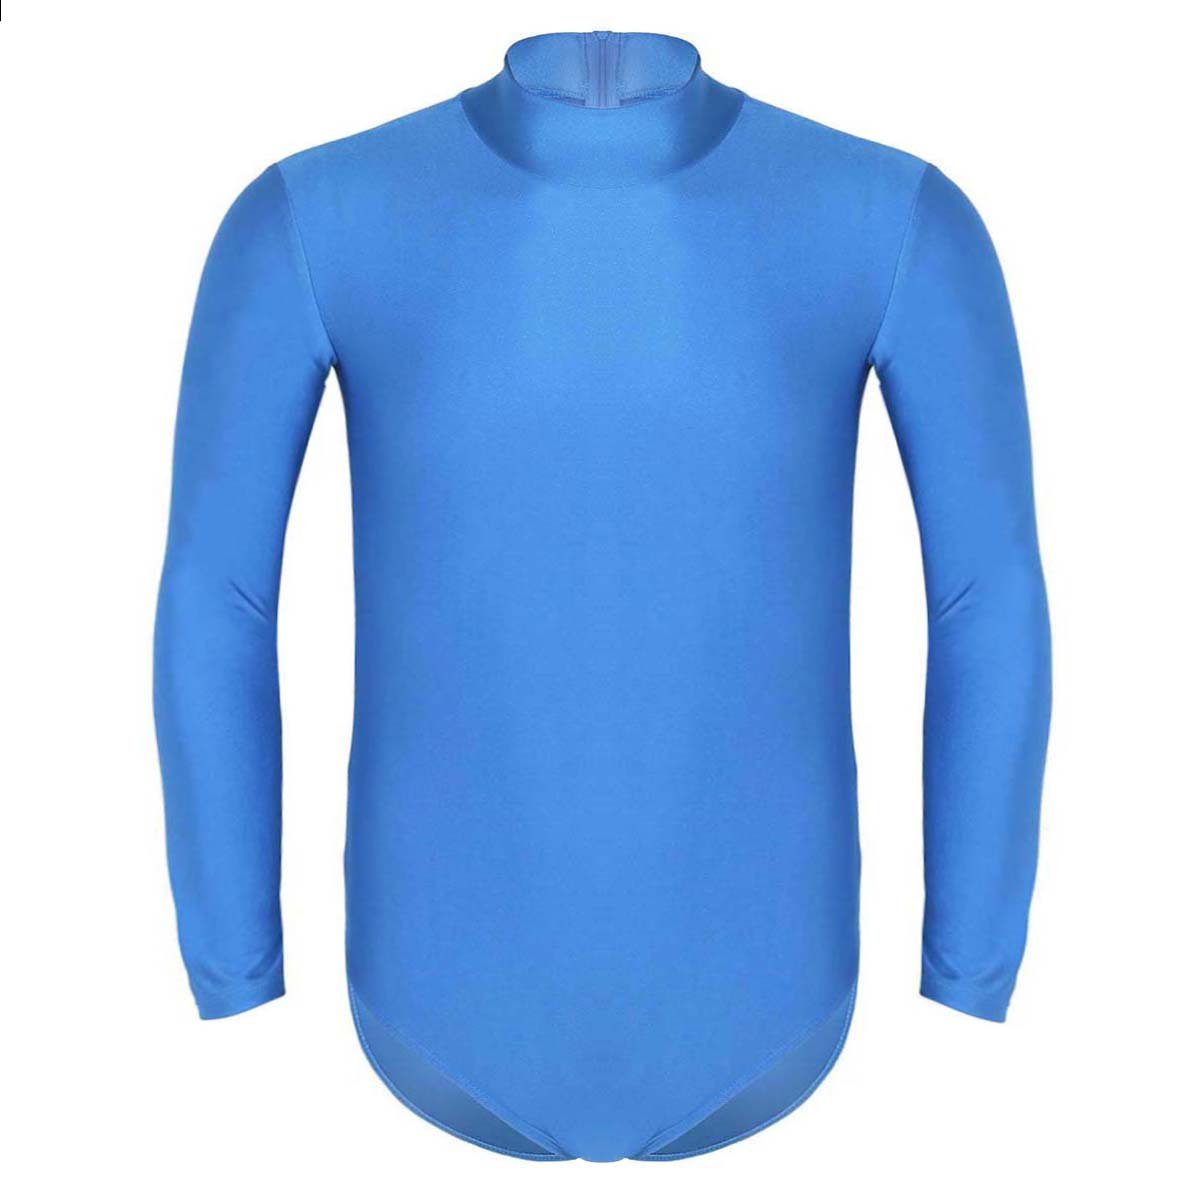 iEFiEL Mens Long Sleeve Stand Collar Leotard Bodywear Underwear Wrestling Singlet Nightwear Light Blue M